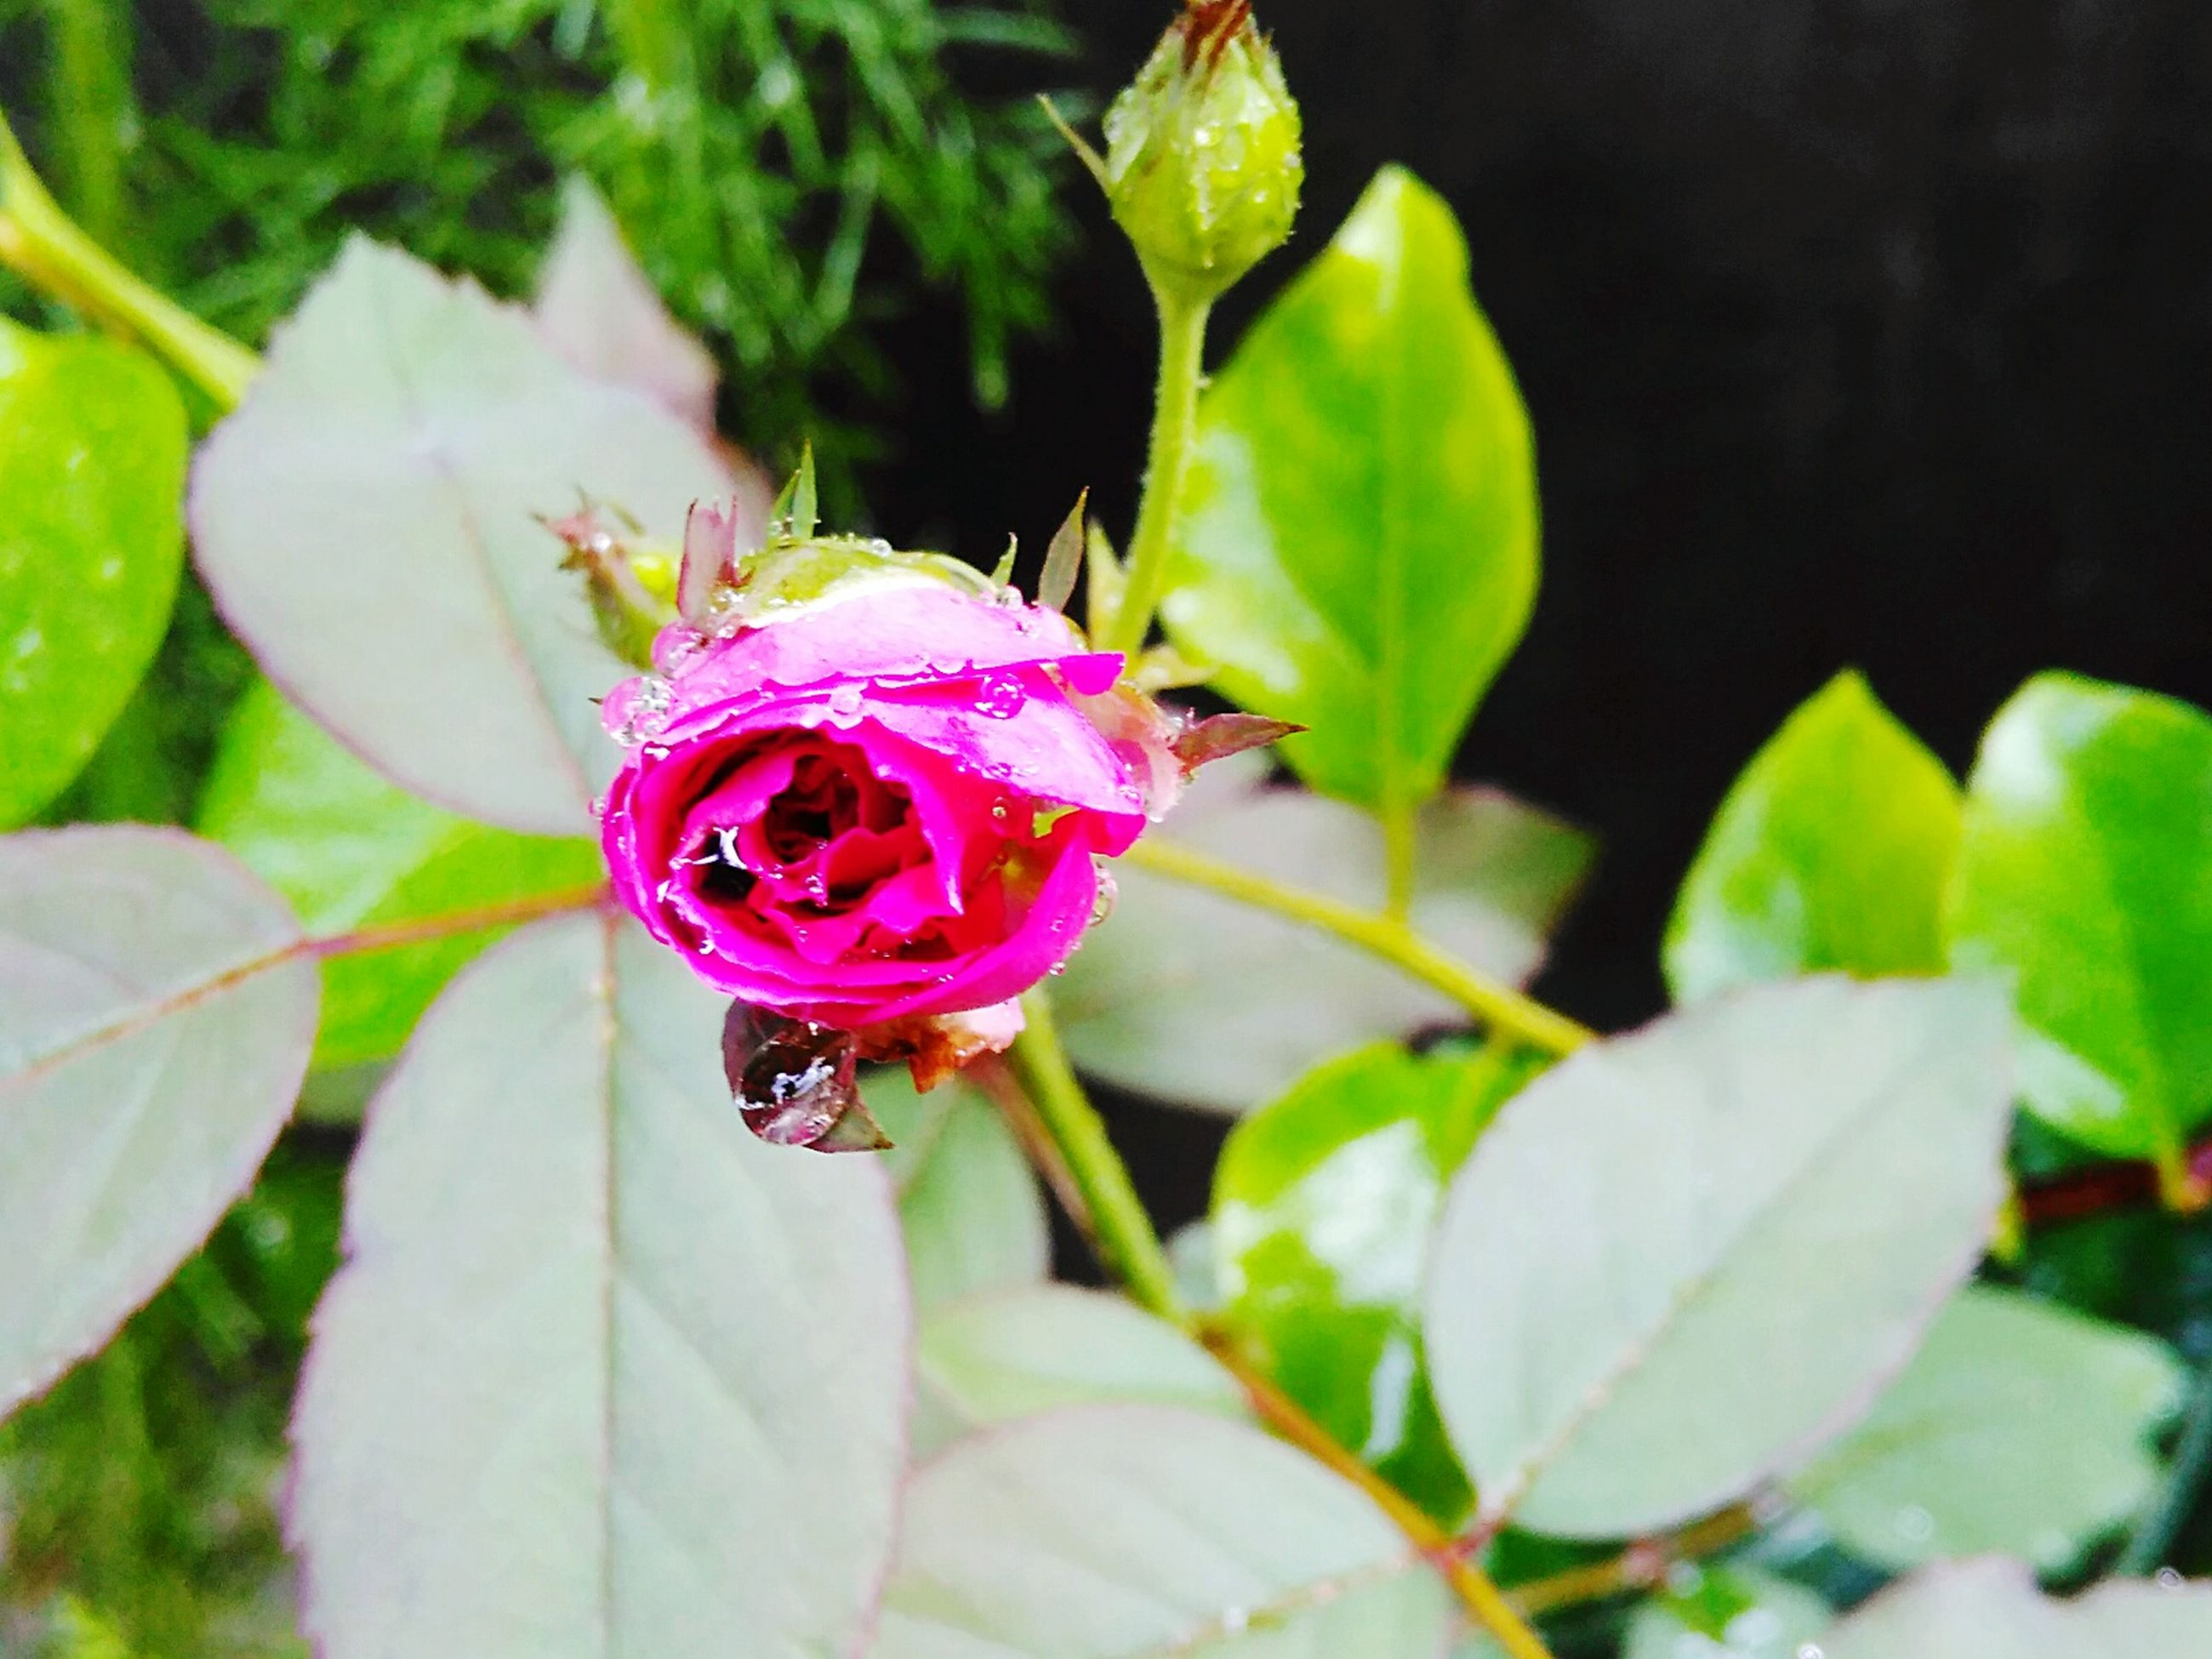 flower, freshness, petal, fragility, growth, flower head, pink color, close-up, beauty in nature, leaf, plant, insect, nature, focus on foreground, one animal, single flower, green color, blooming, bud, animals in the wild